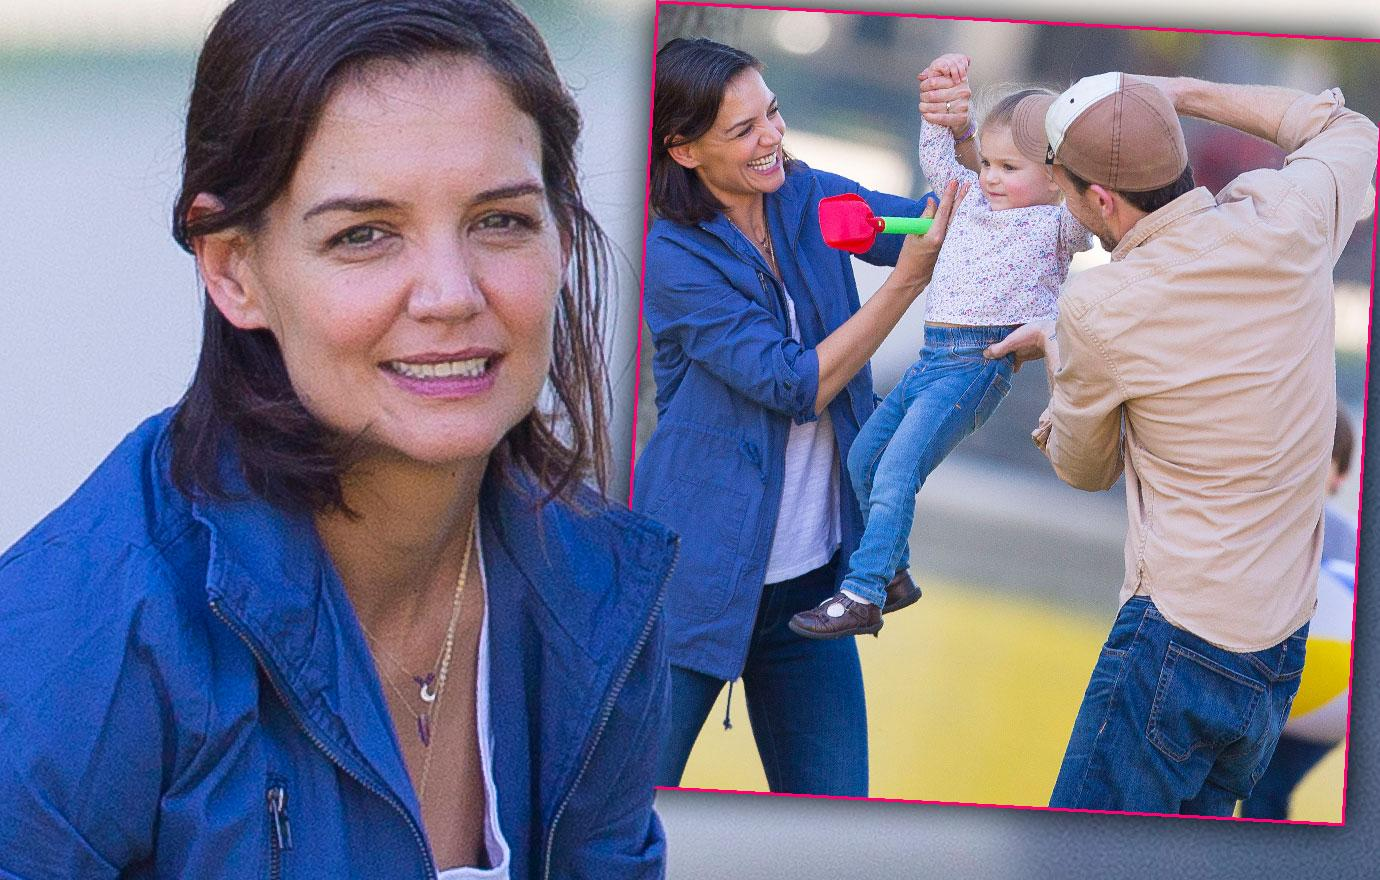 //katie holmes films movie scenes witch child actress pp